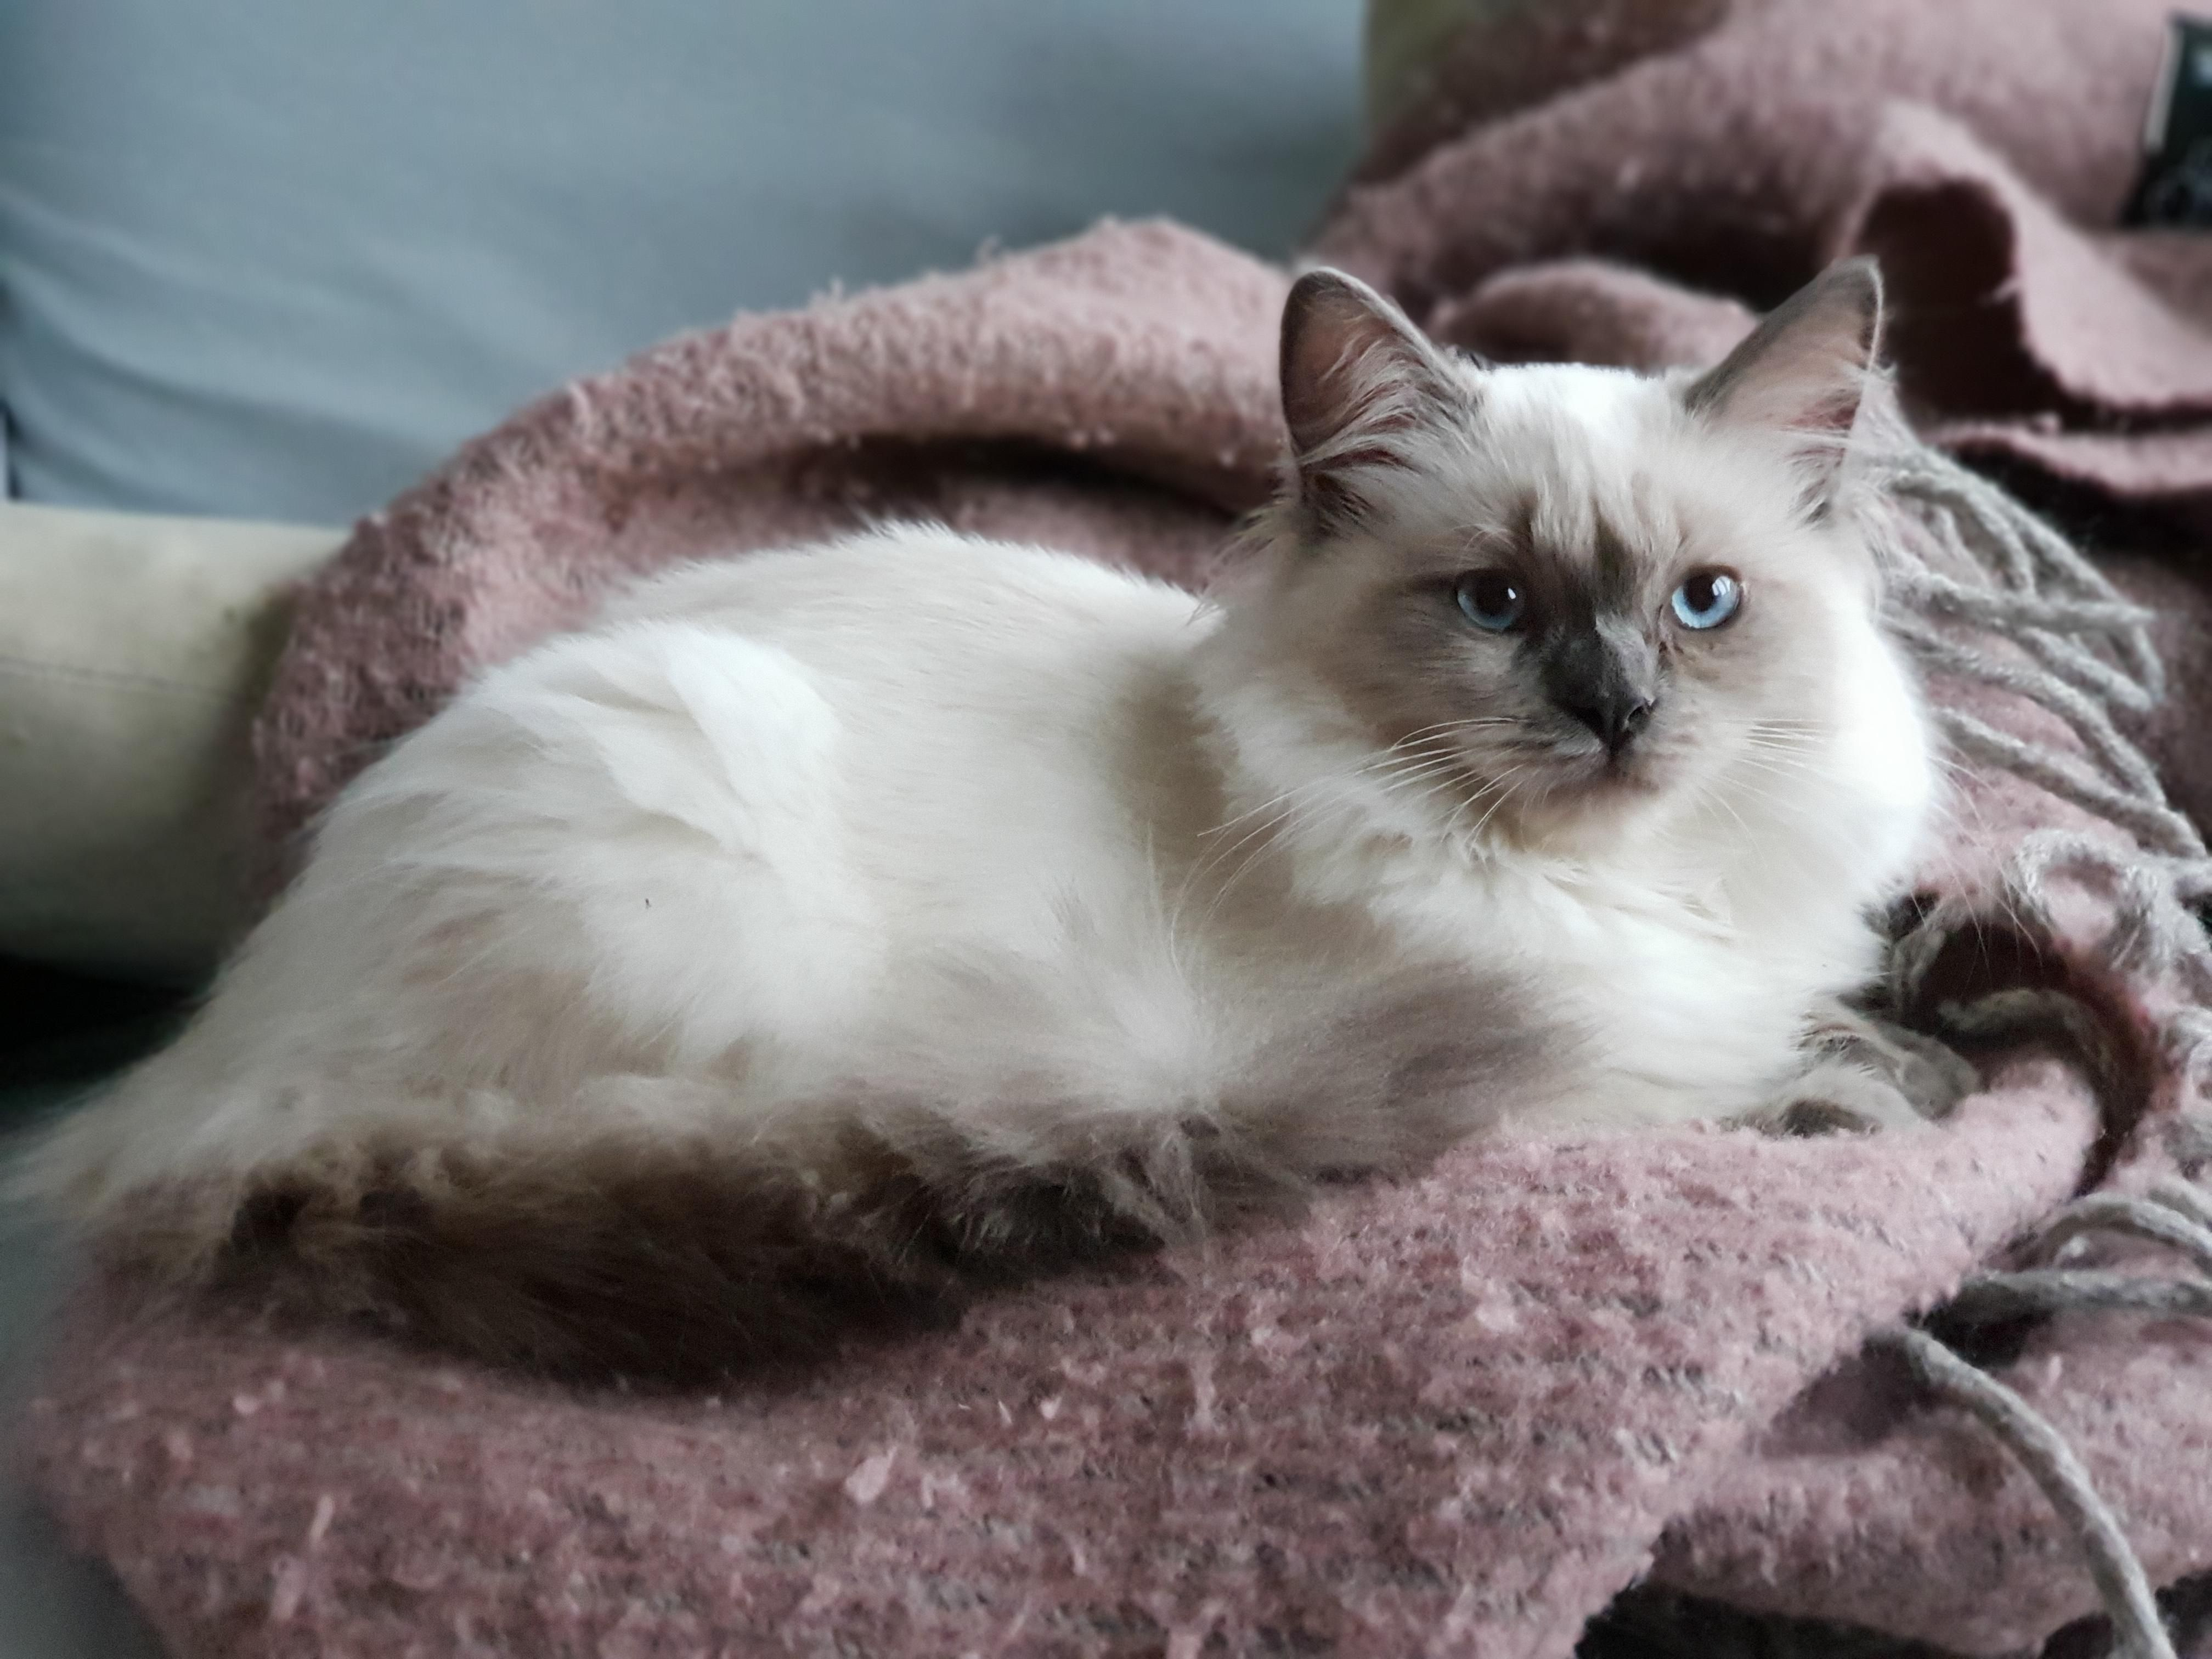 Misty On Her Favorite Wool Blanket Hello There Bright People Are You Catlover Or Have You Any Pretty Cats I Thin Cute Cats And Kittens Cats Cat Blanket